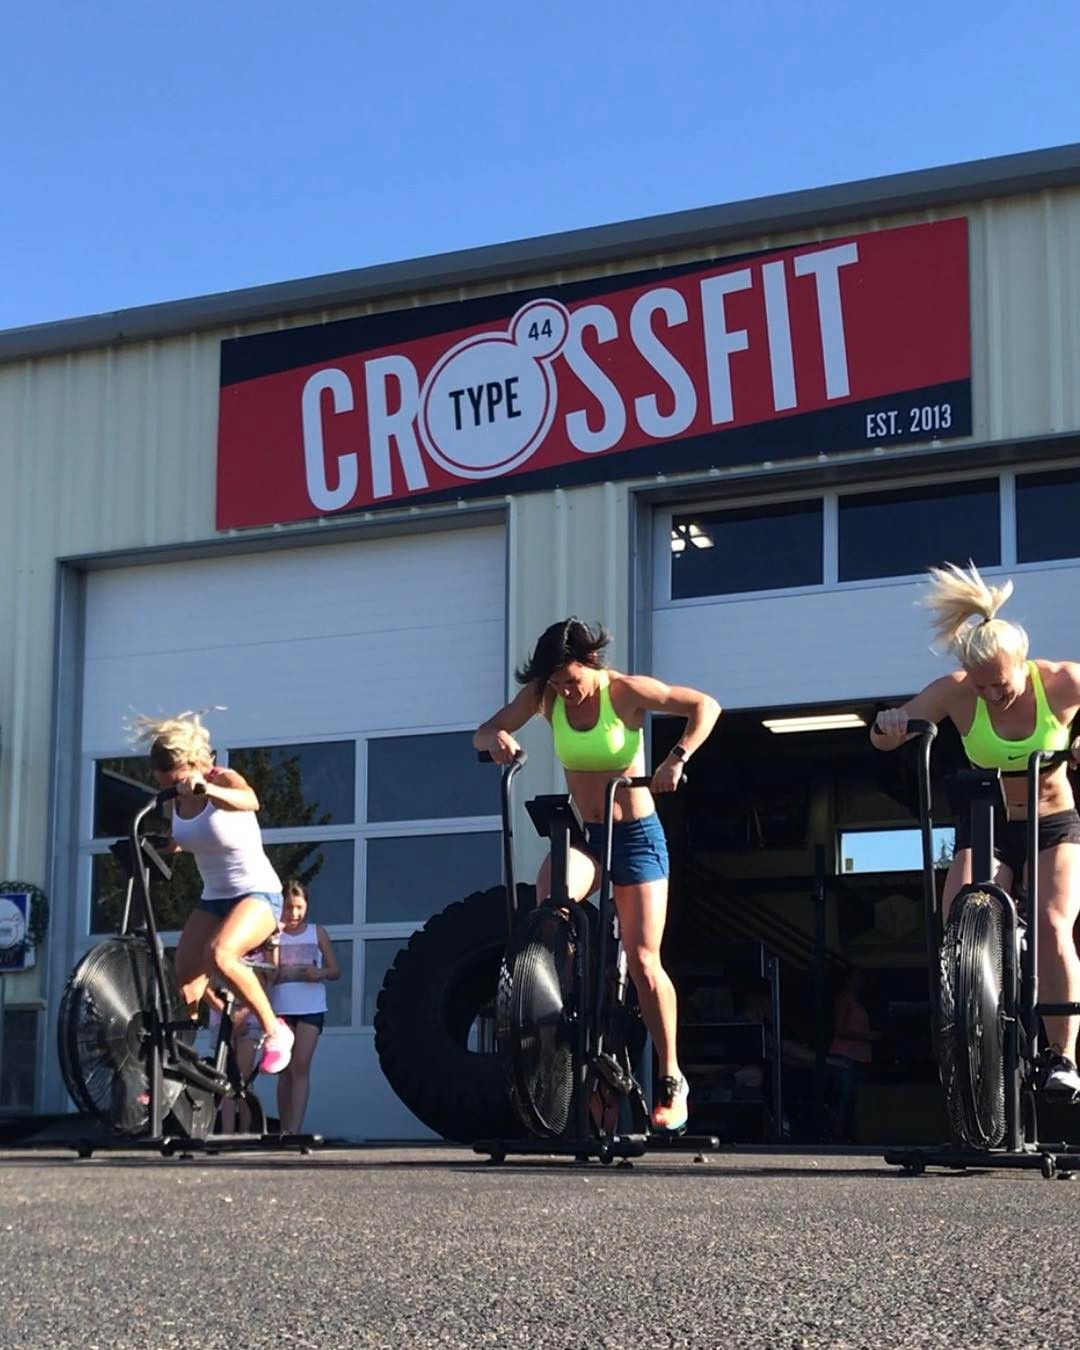 Best way to get over hump day? Fitness with friends. Duh. . . . #type44 #type44strong #boomshockalaka #humpday #crossfit #crossfitgames #assaultbike #fitaid #roguefitness #inbend #localize #centraloregon #boomshockalaka #bendoregon #smashpack #progenex #killcliff #sfh #livinsfh #nourishmealprep #lululemon #lululemonbend